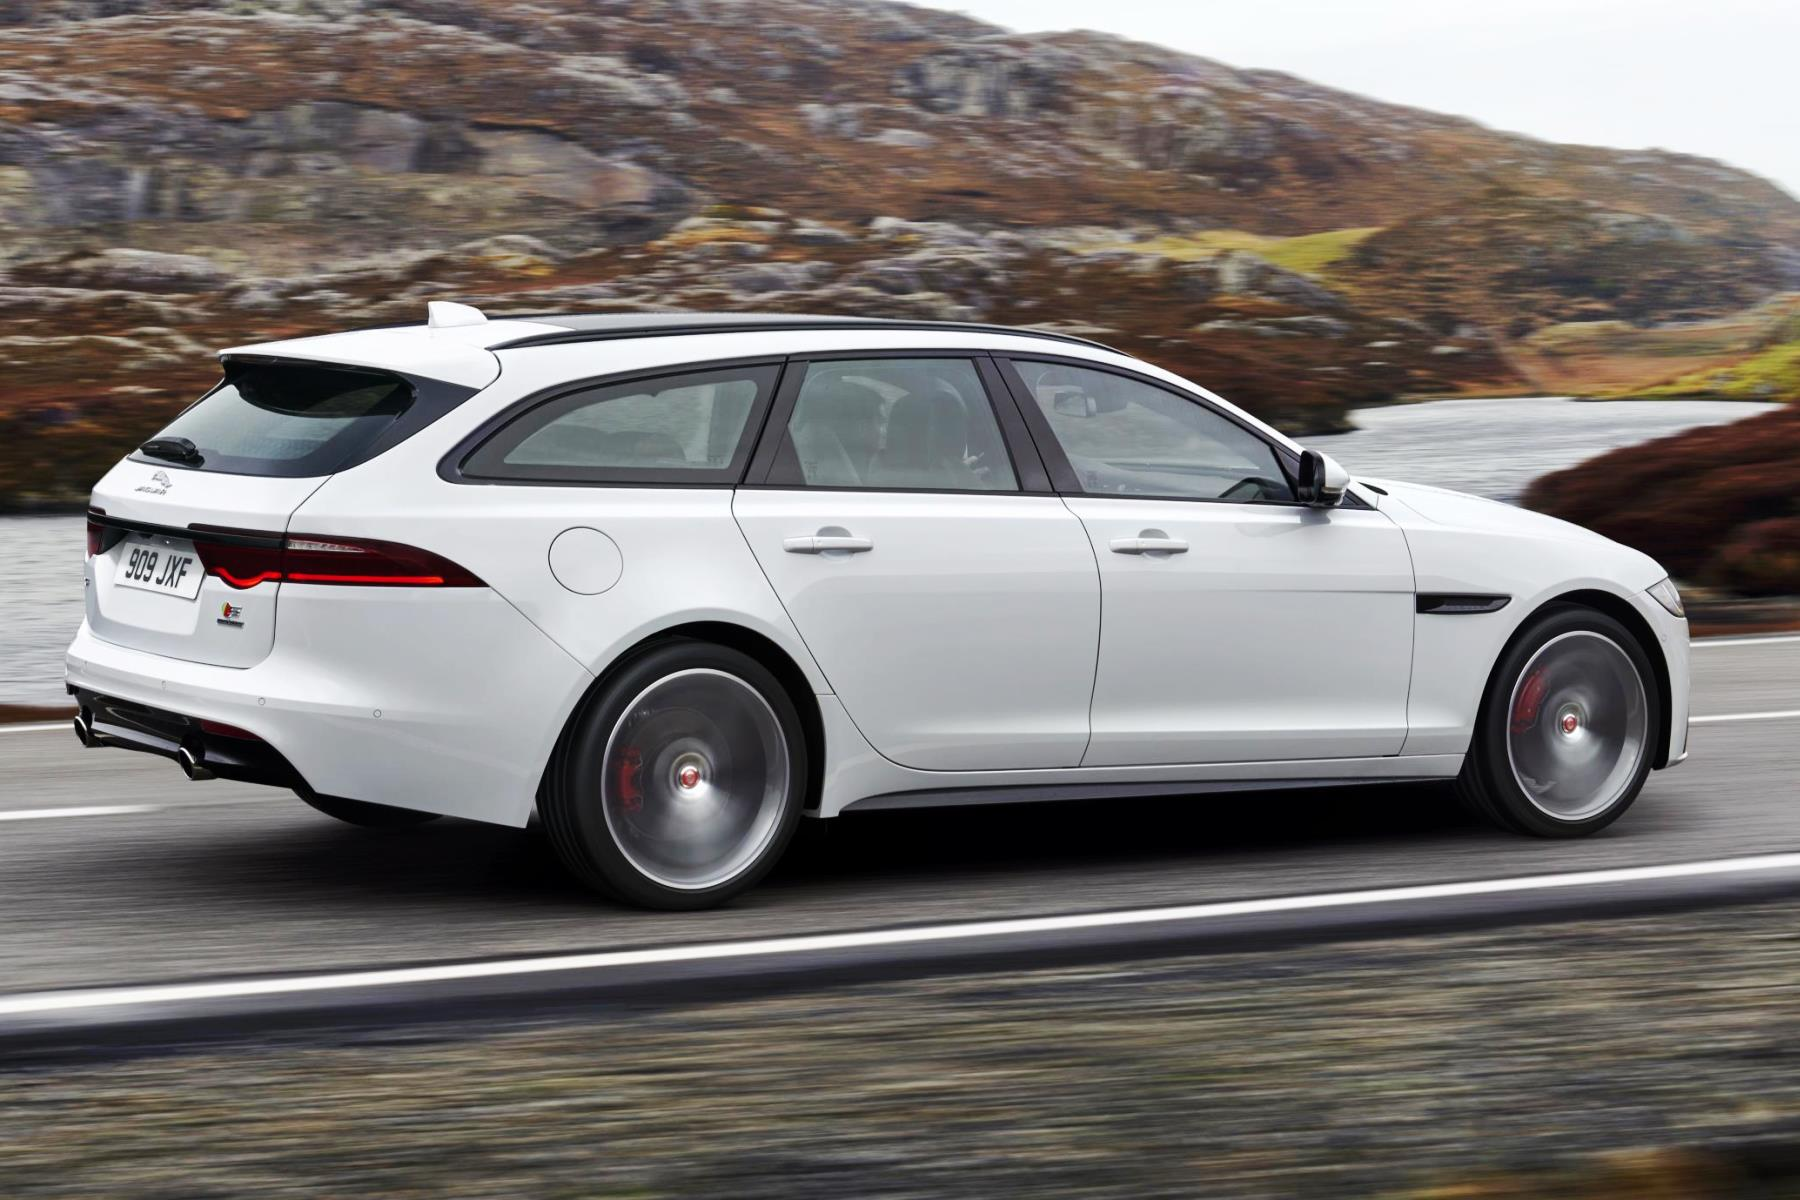 hot new jaguar xf sportbrake revealed automotive blog. Black Bedroom Furniture Sets. Home Design Ideas